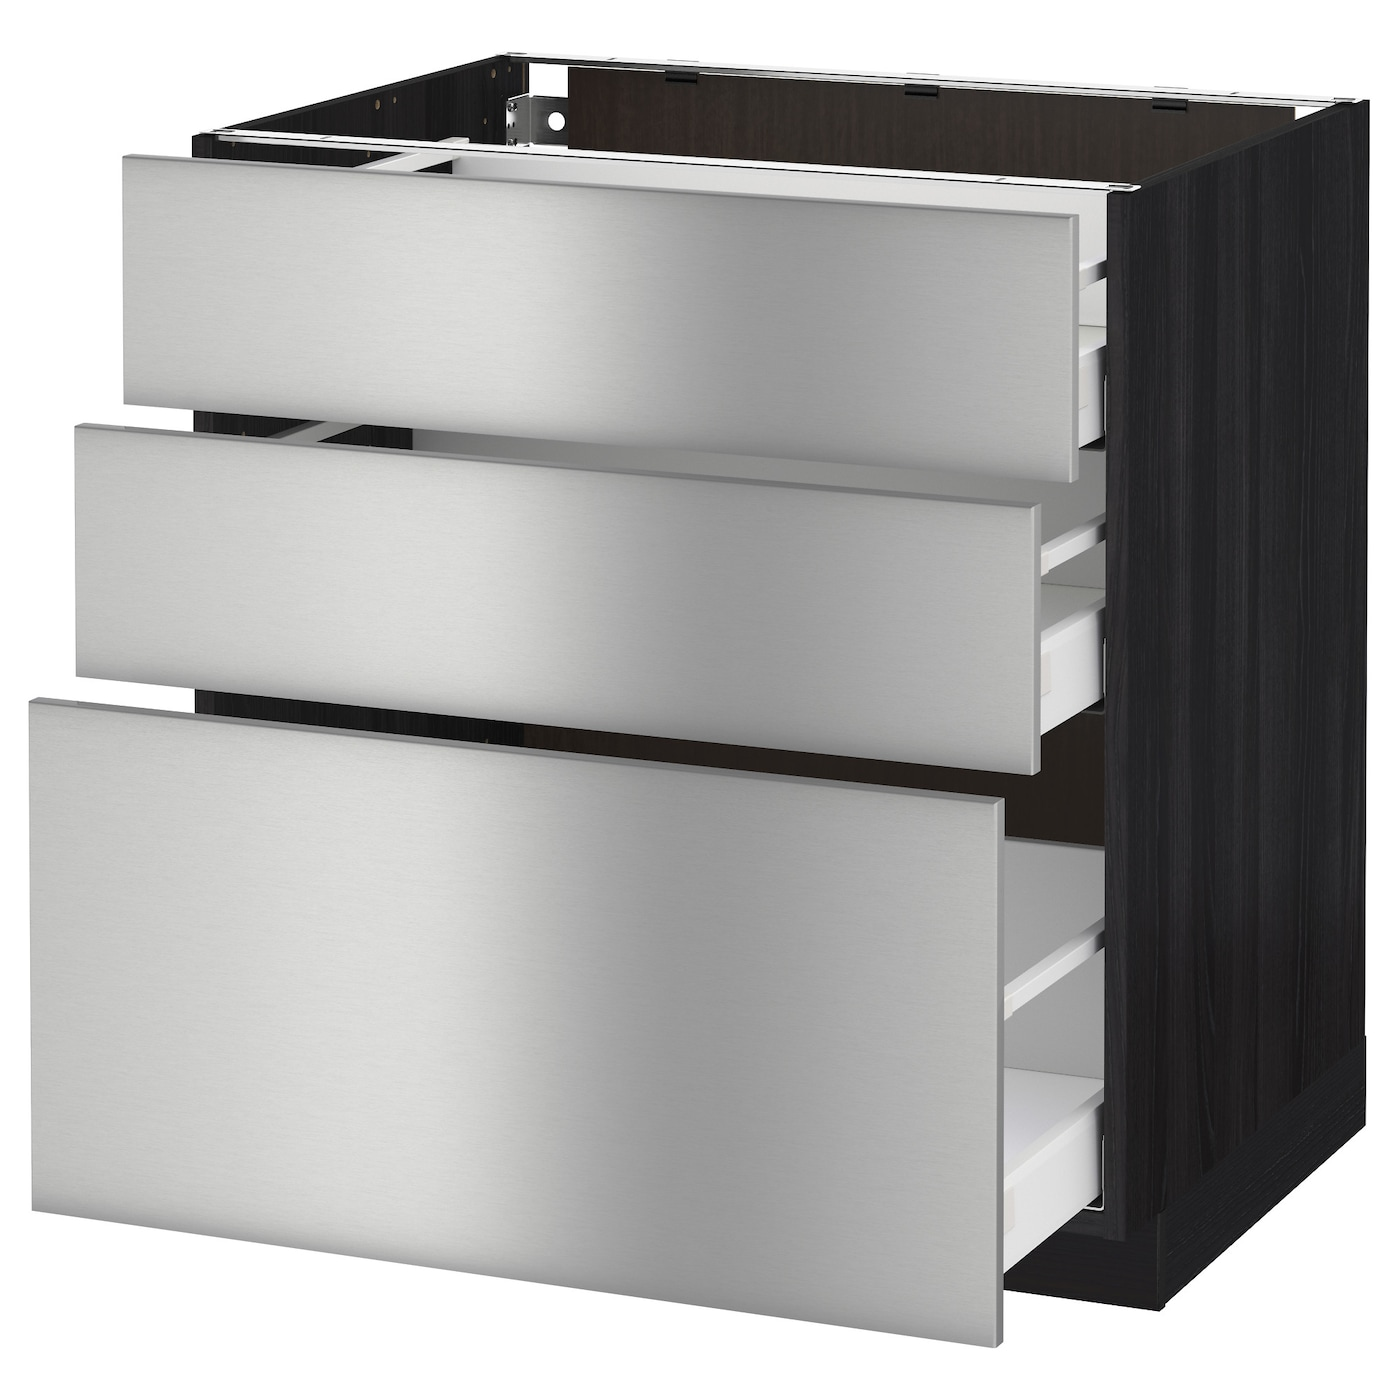 Metod maximera base cabinet with 3 drawers black grevsta for Stainless steel kitchen base cabinets